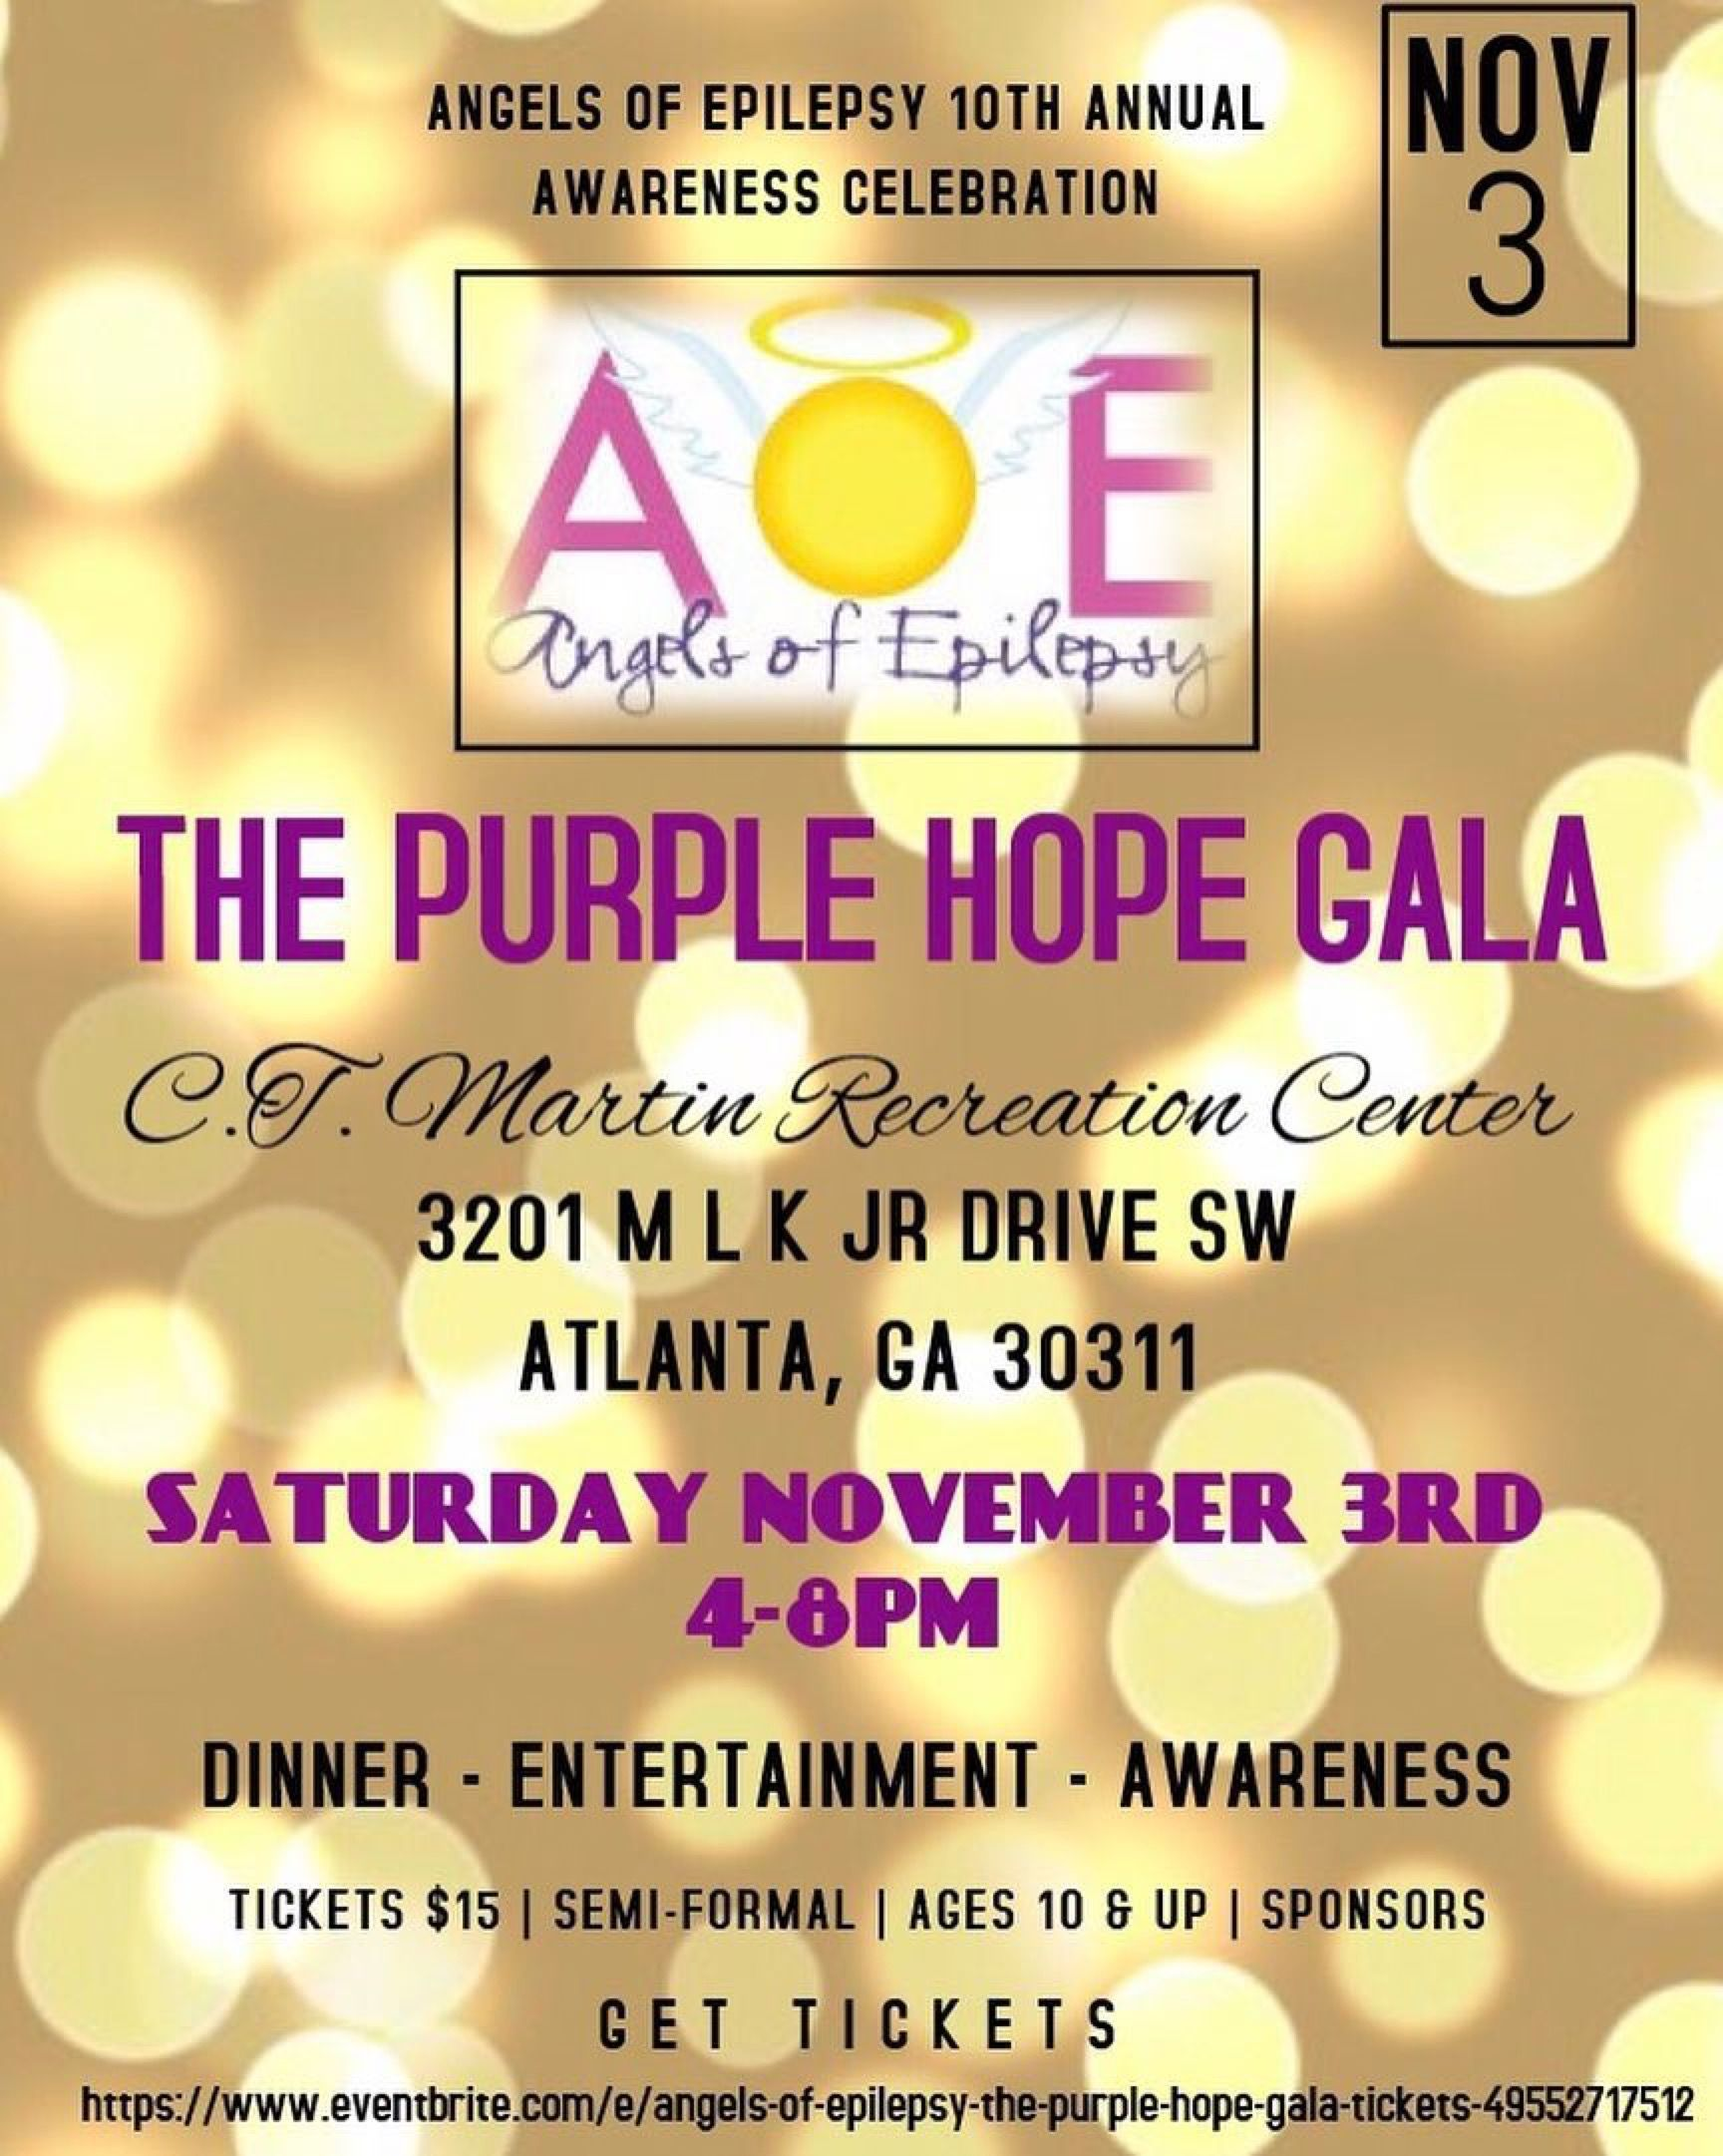 You're cordially invited to the Angels Of Epilepsy 10th